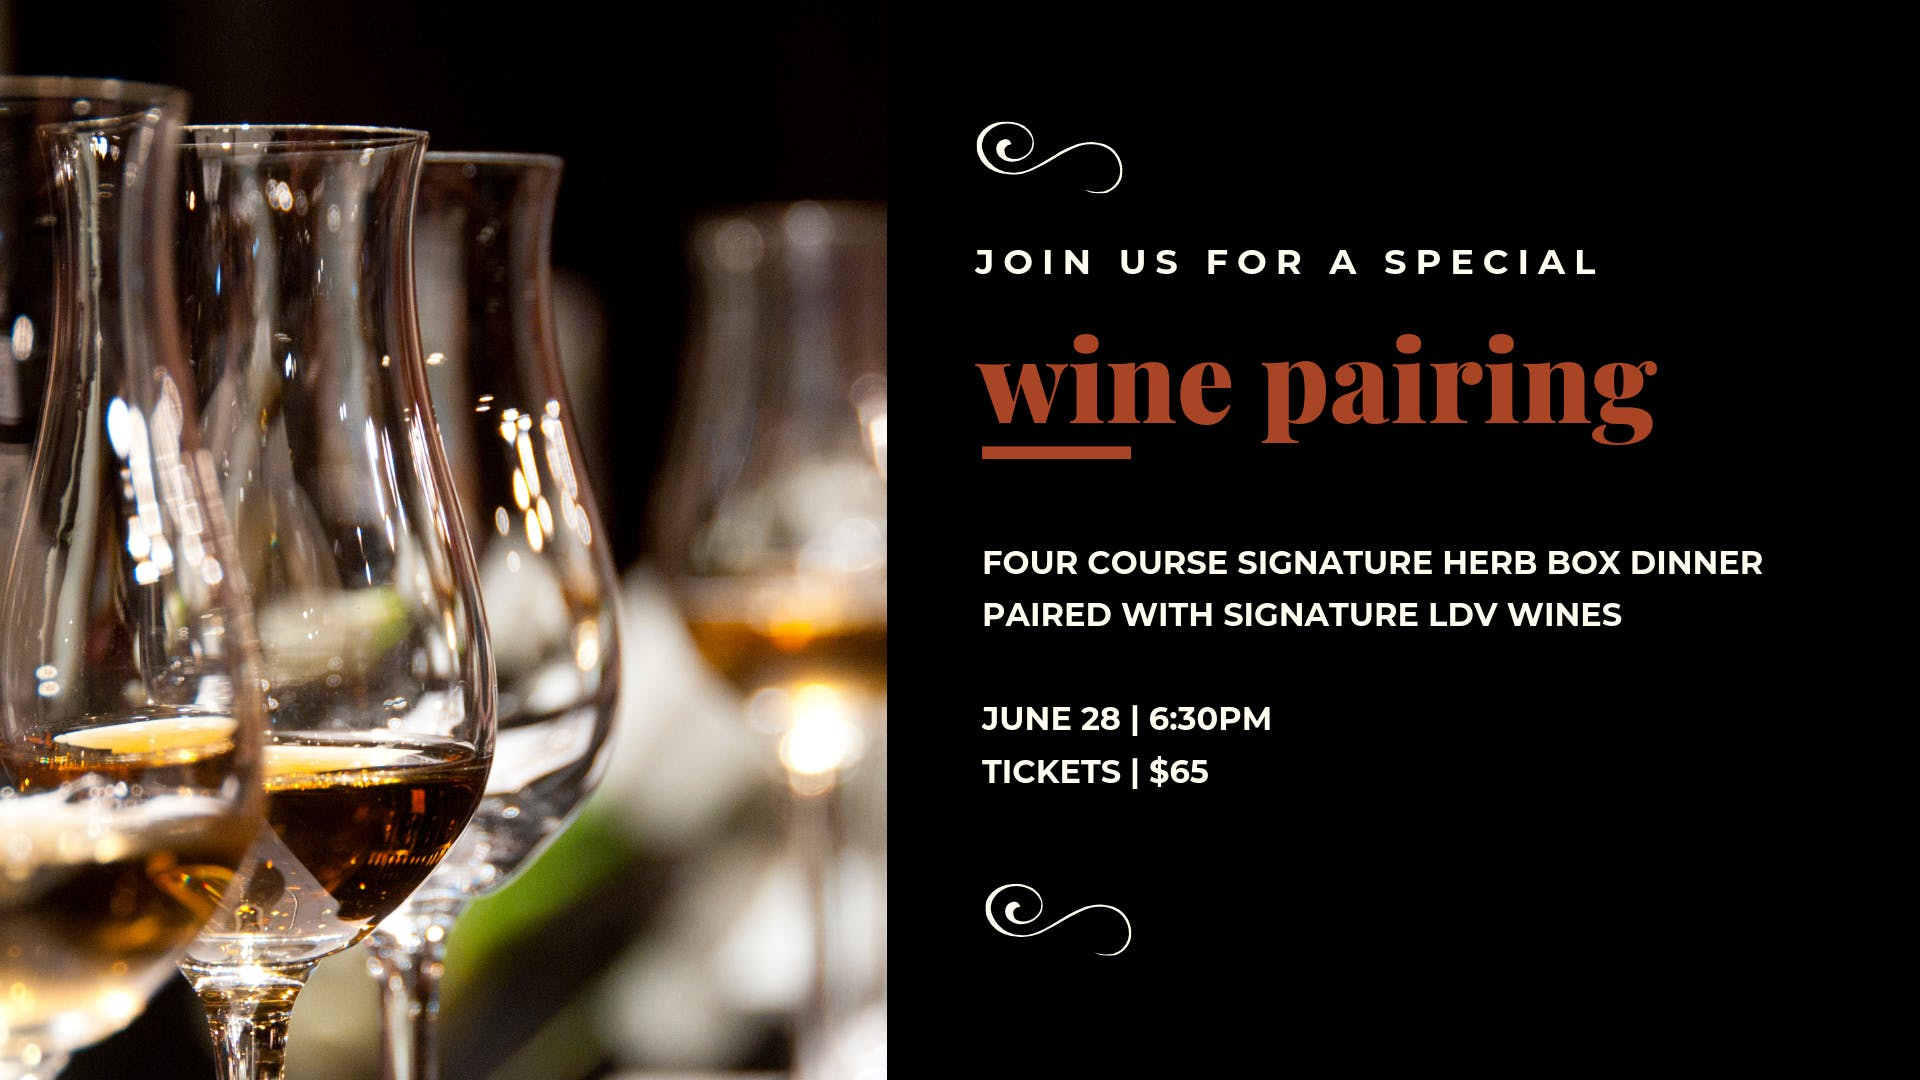 Wine Pairing at The Herb Box with LDV Winery